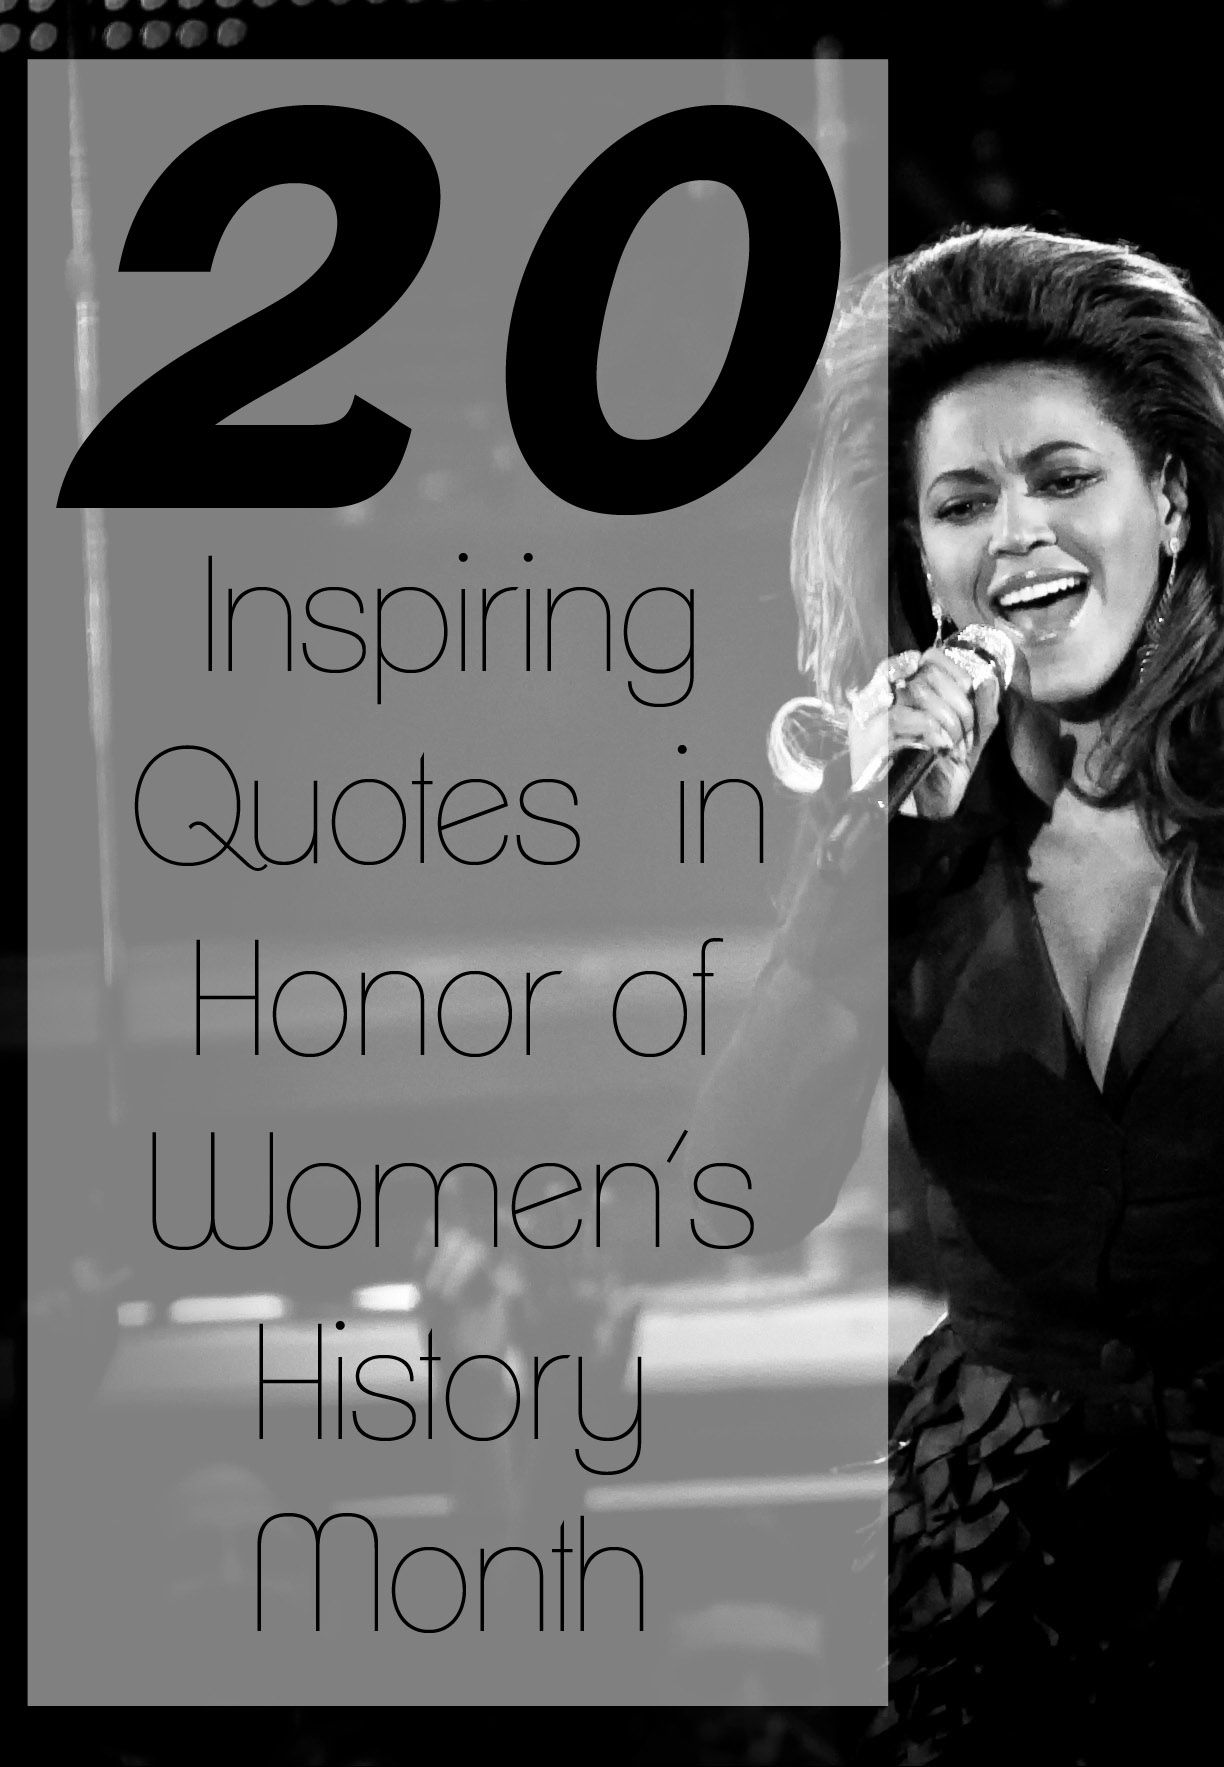 Black History Month Quotes 20 Inspiring Quotes From Some Role Modelworthy Women In Honor Of